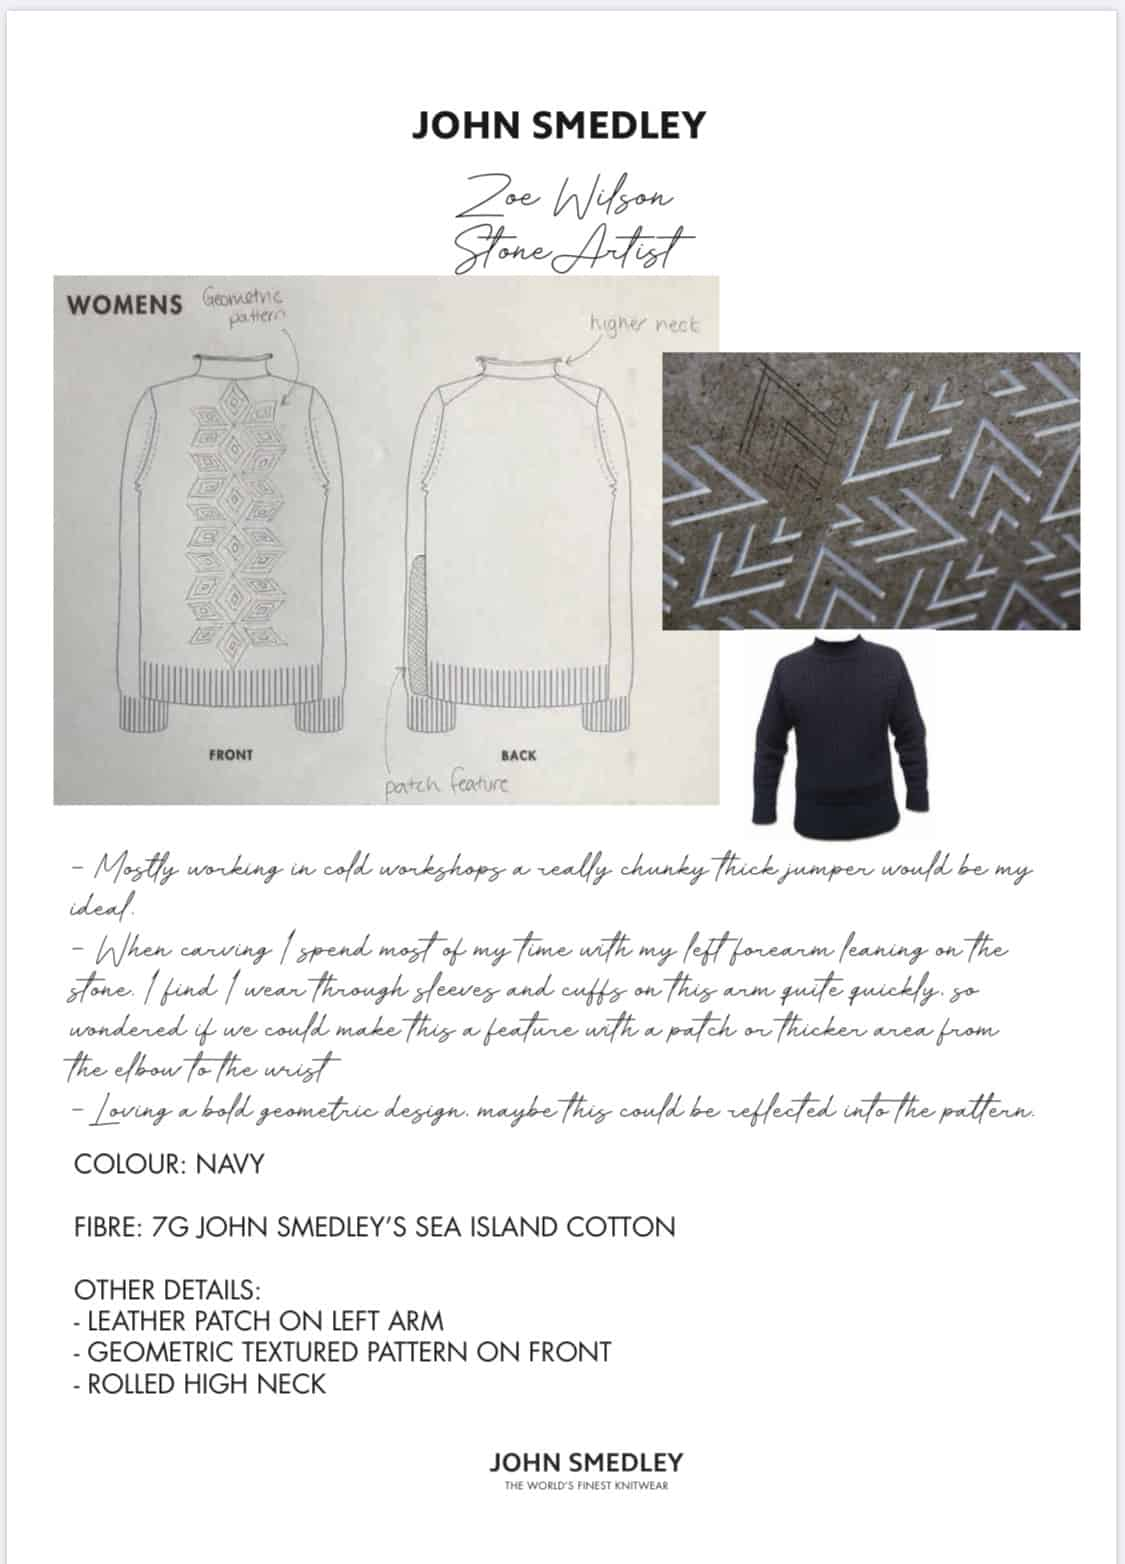 Drawings of the garment idea for John Smedley